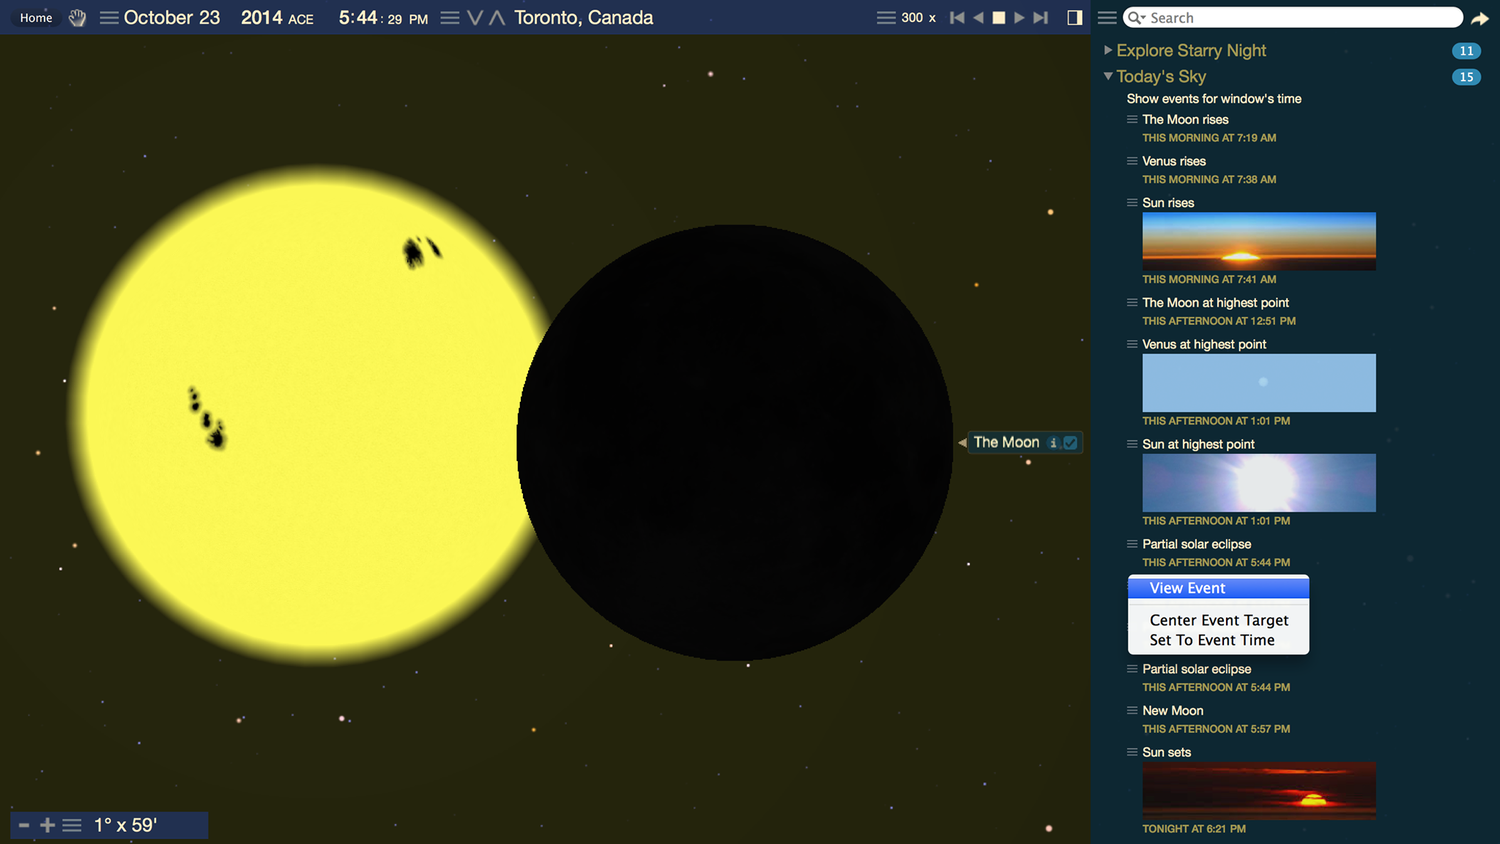 Partial solar eclipse on October 23rd — Simulating the Universe